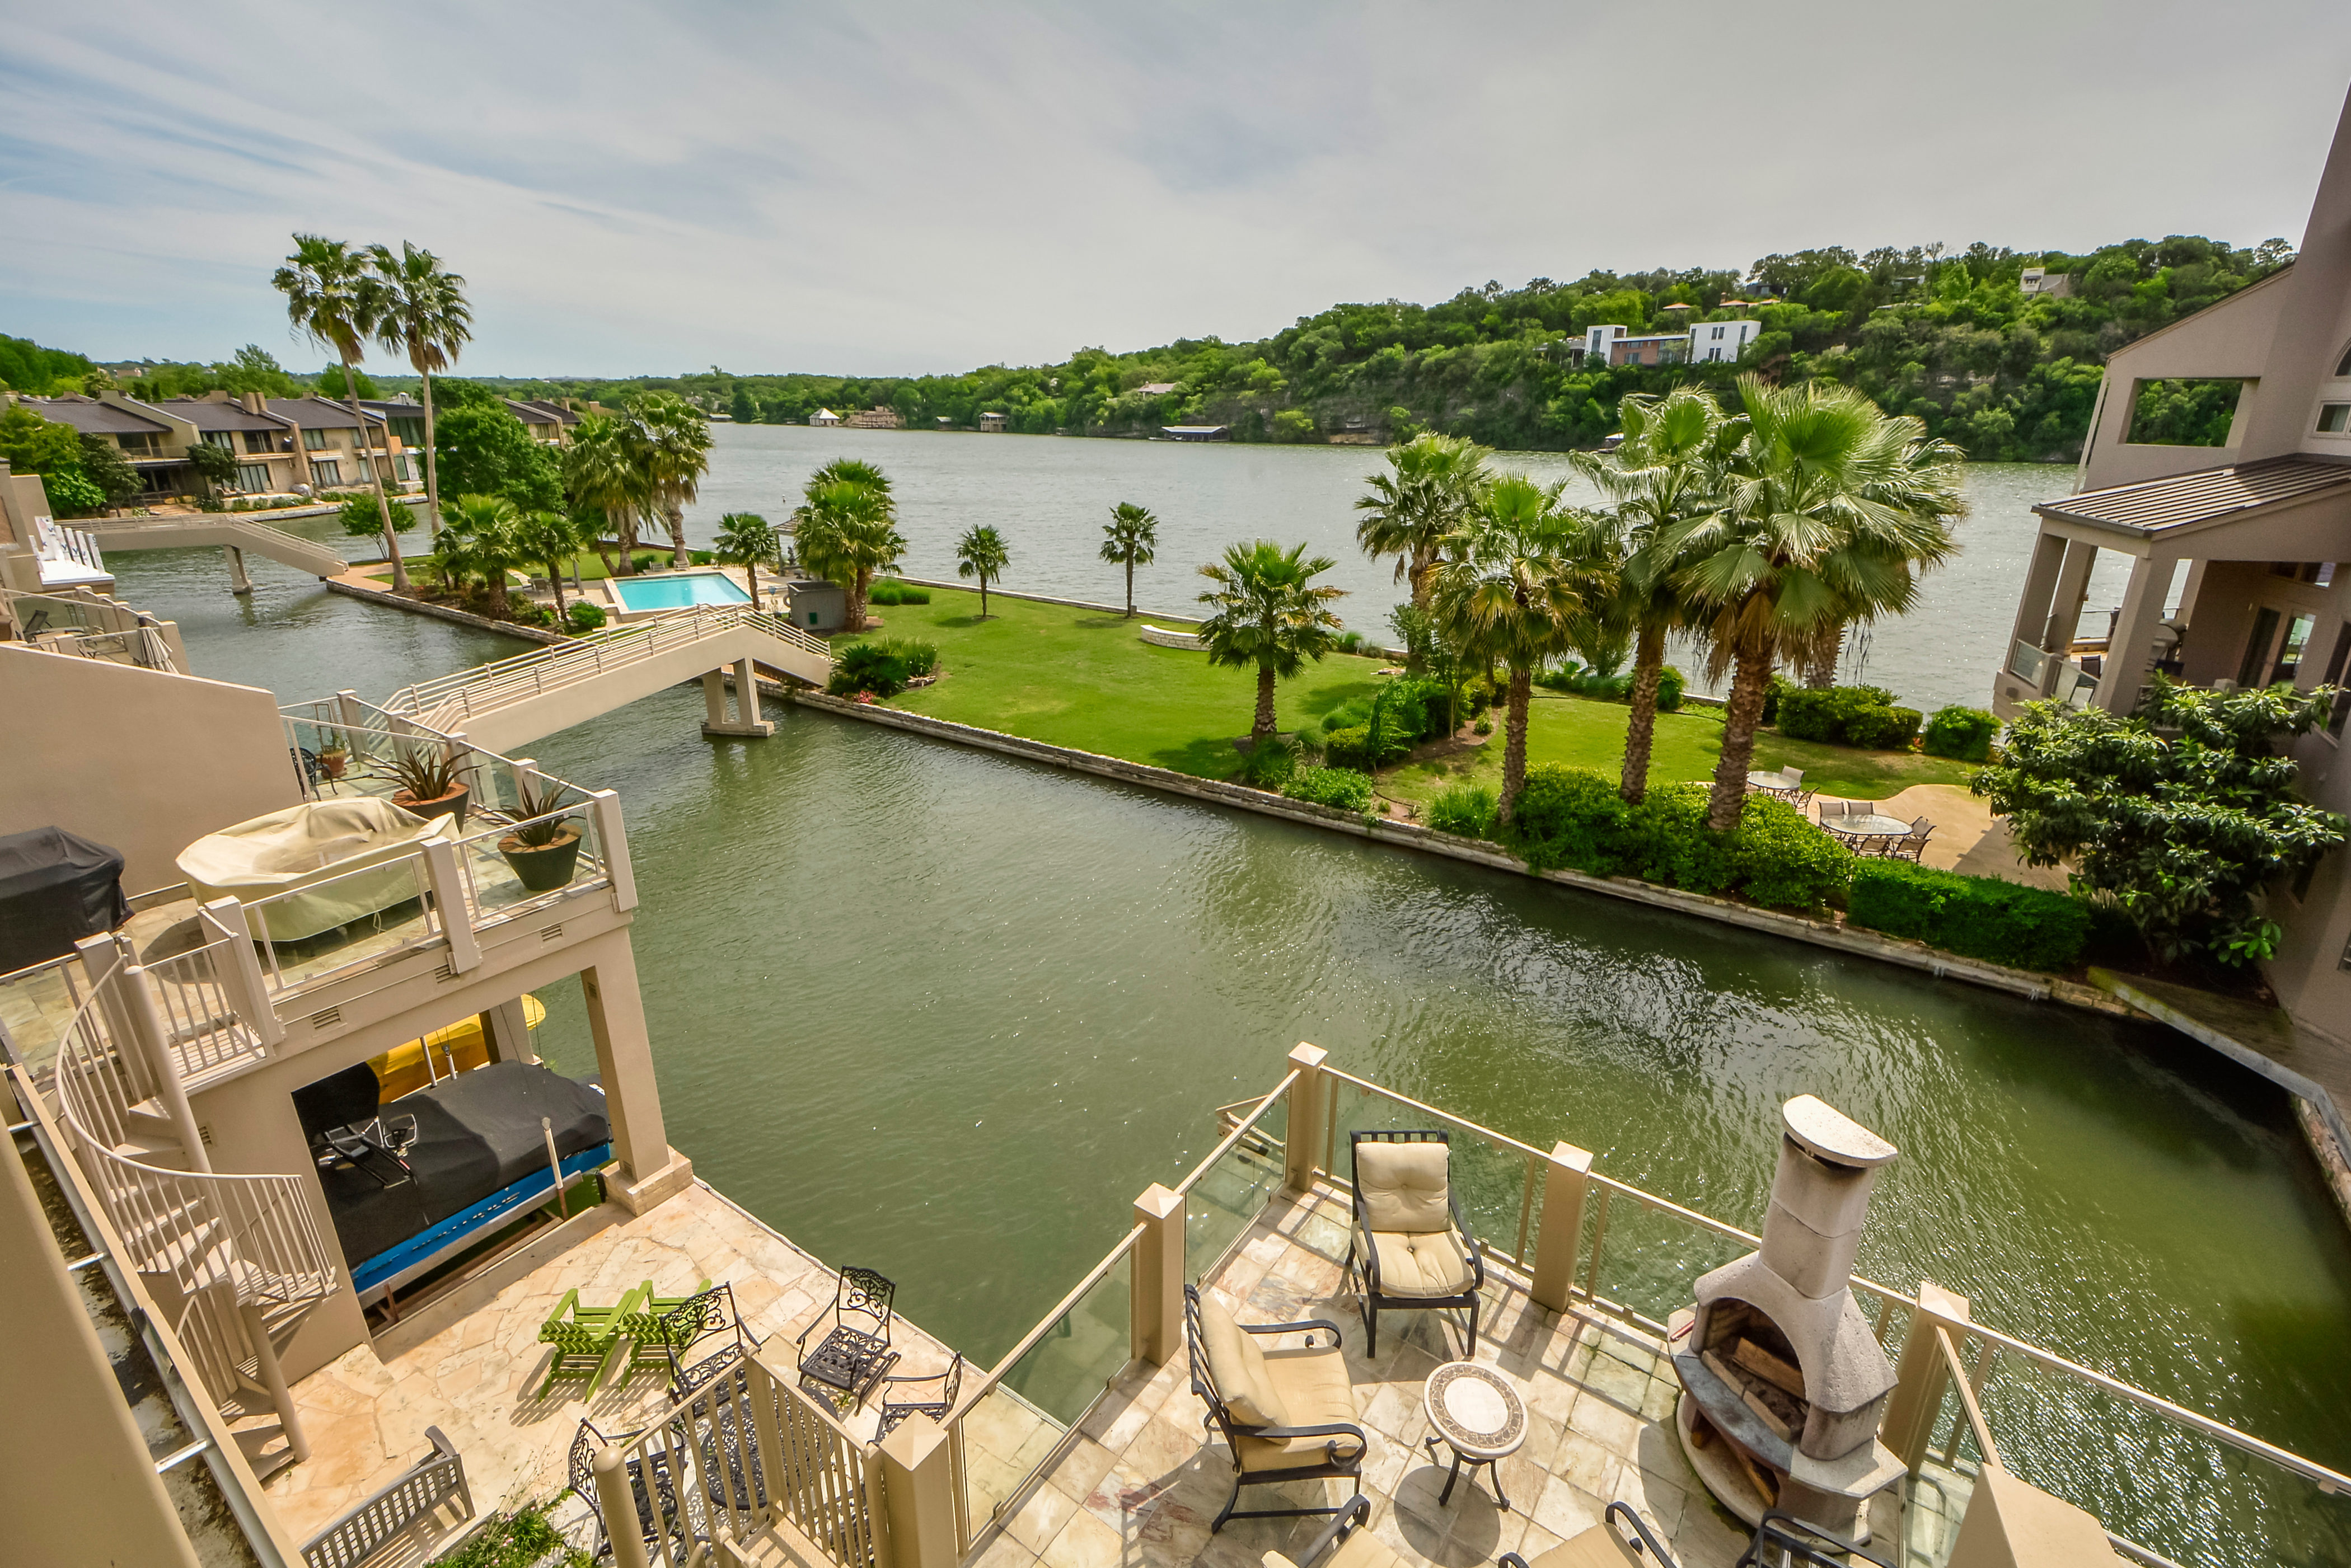 Condominium for Sale at Immaculate Lake Austin Condo 2329 Westlake Dr 11 Austin, Texas 78746 United States